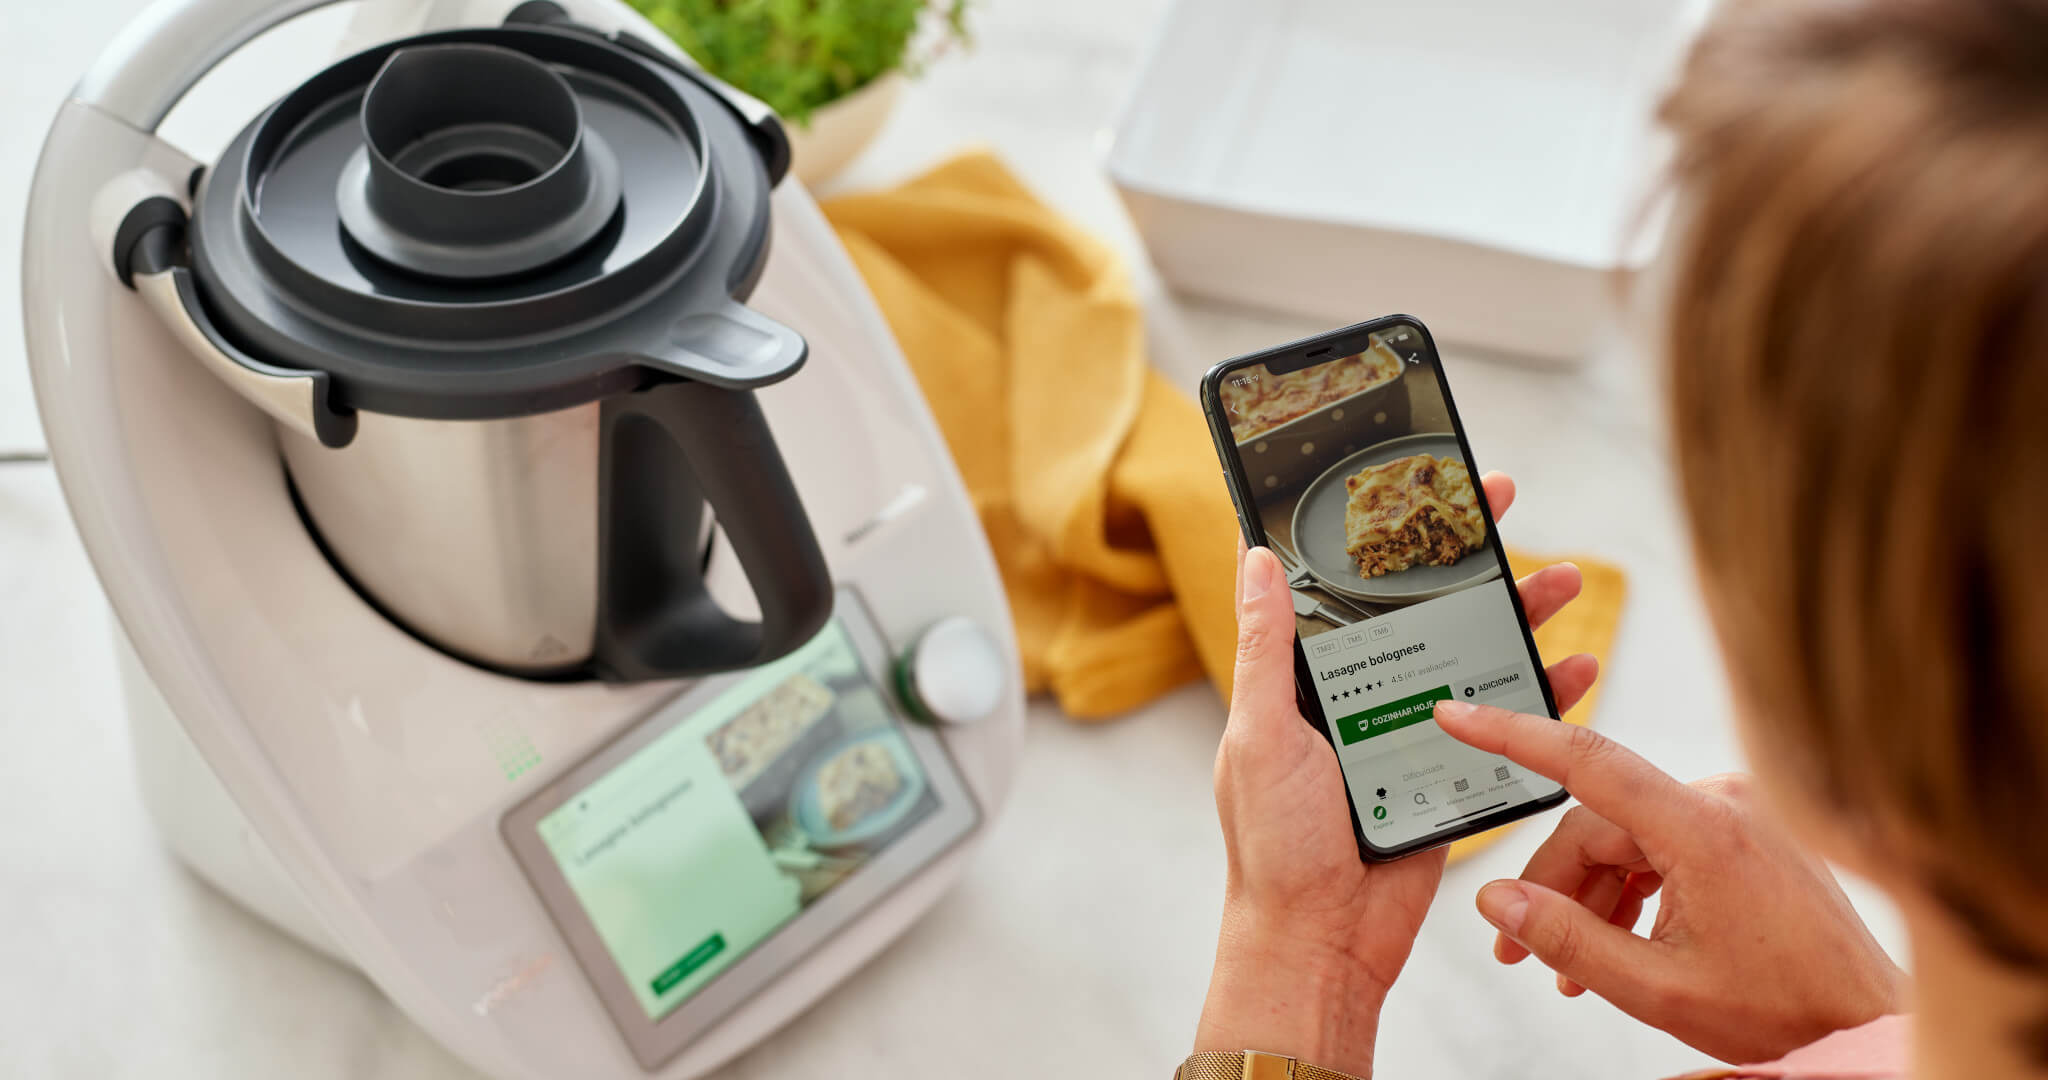 int thermomix TM6 product in use woman hands